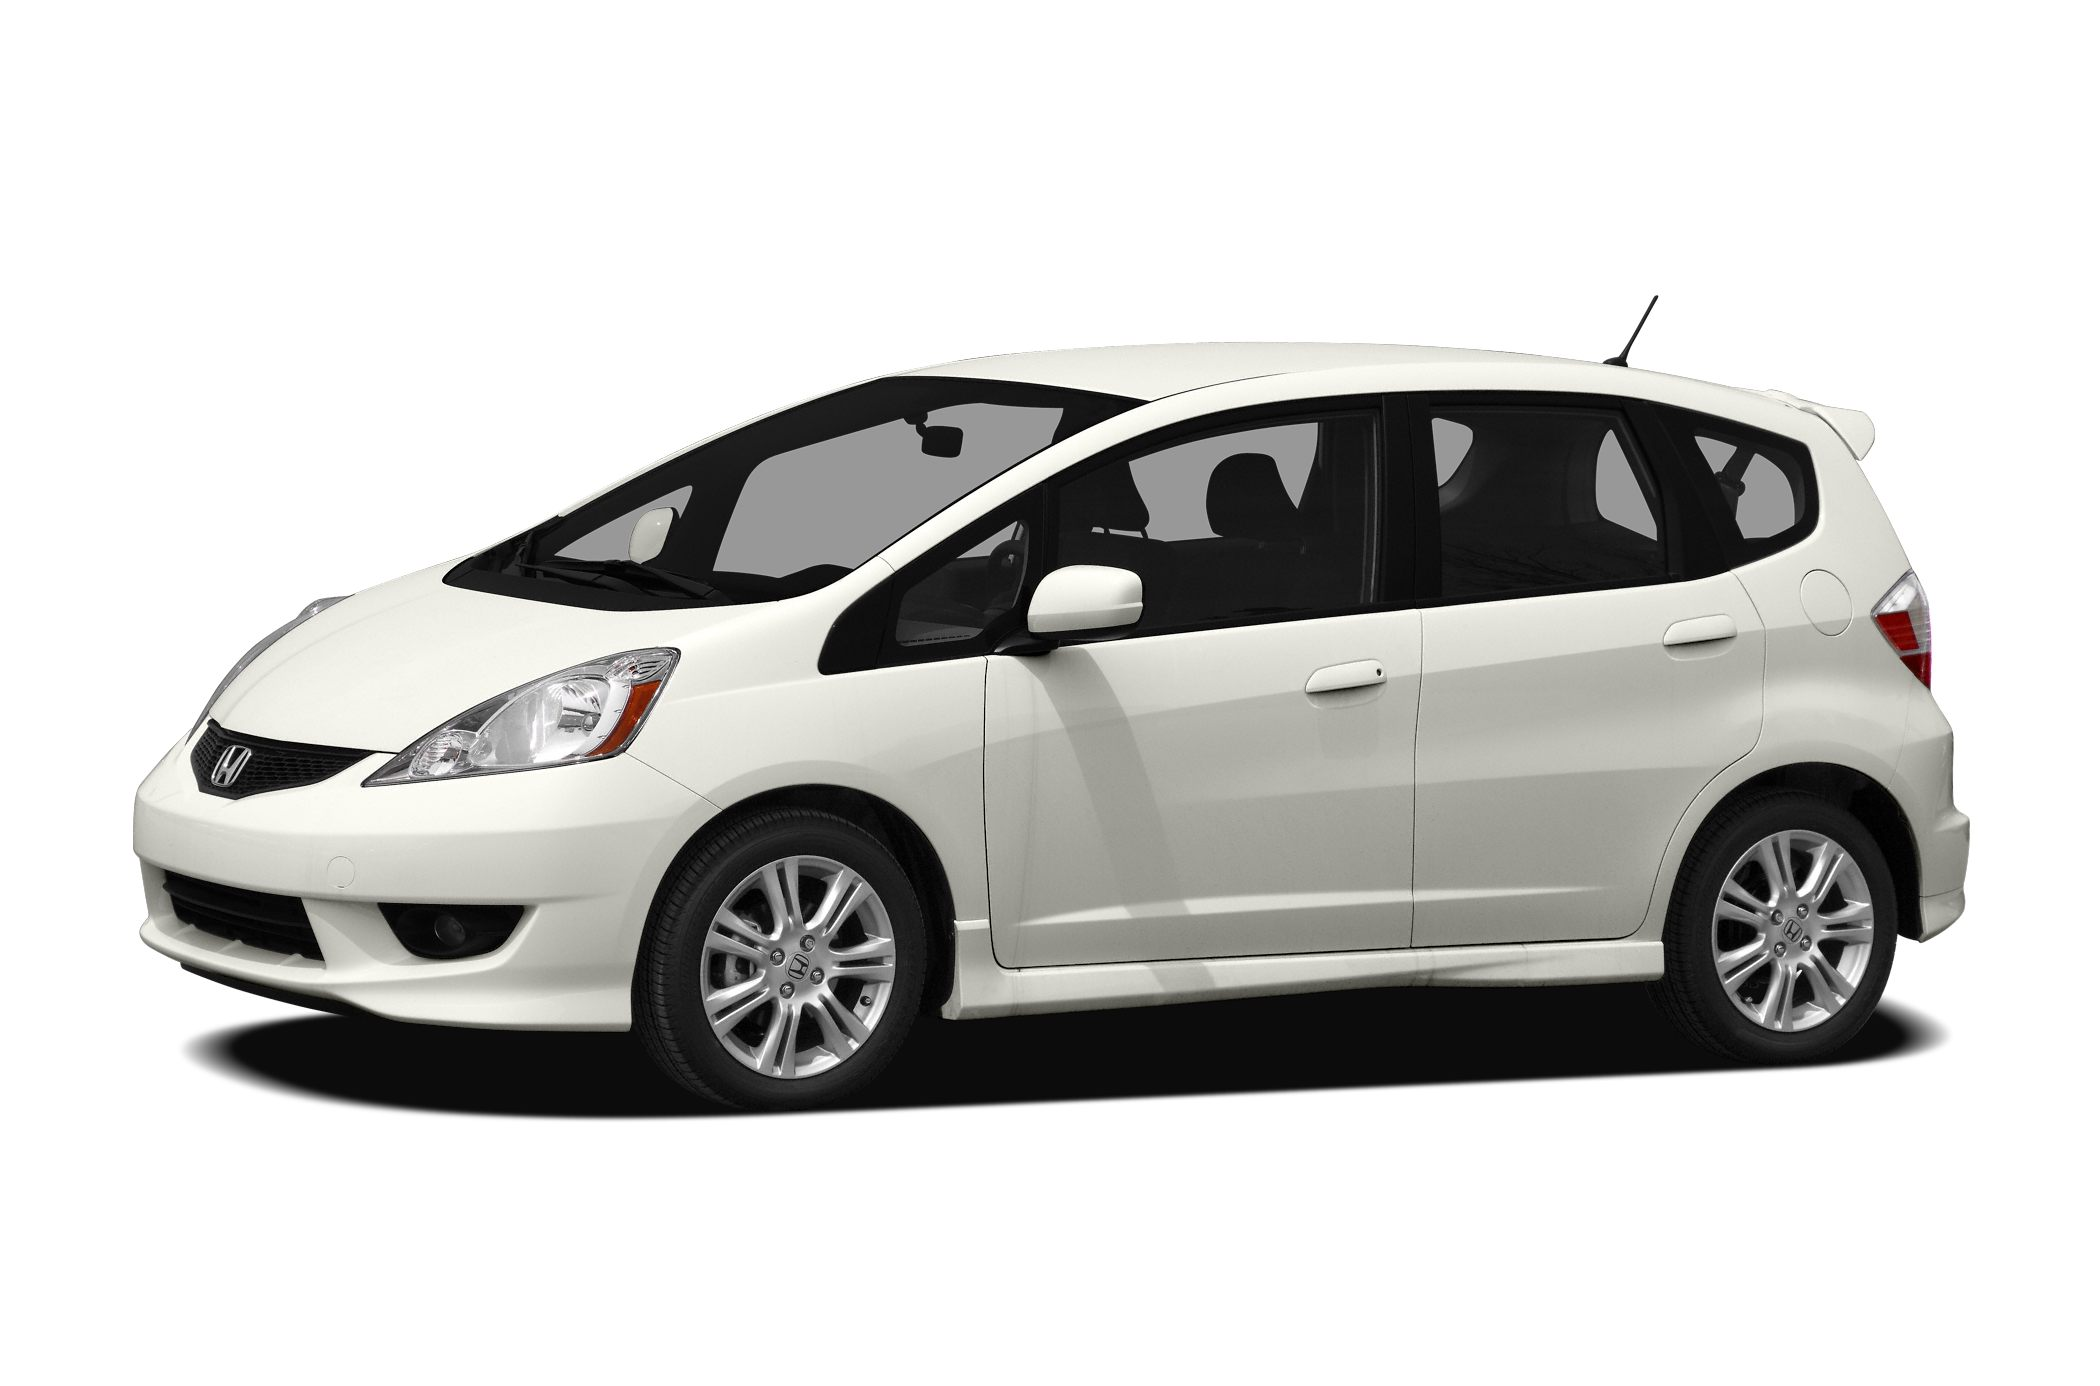 2011 Honda Fit Sport Hatchback for sale in Groton for $13,182 with 49,726 miles.